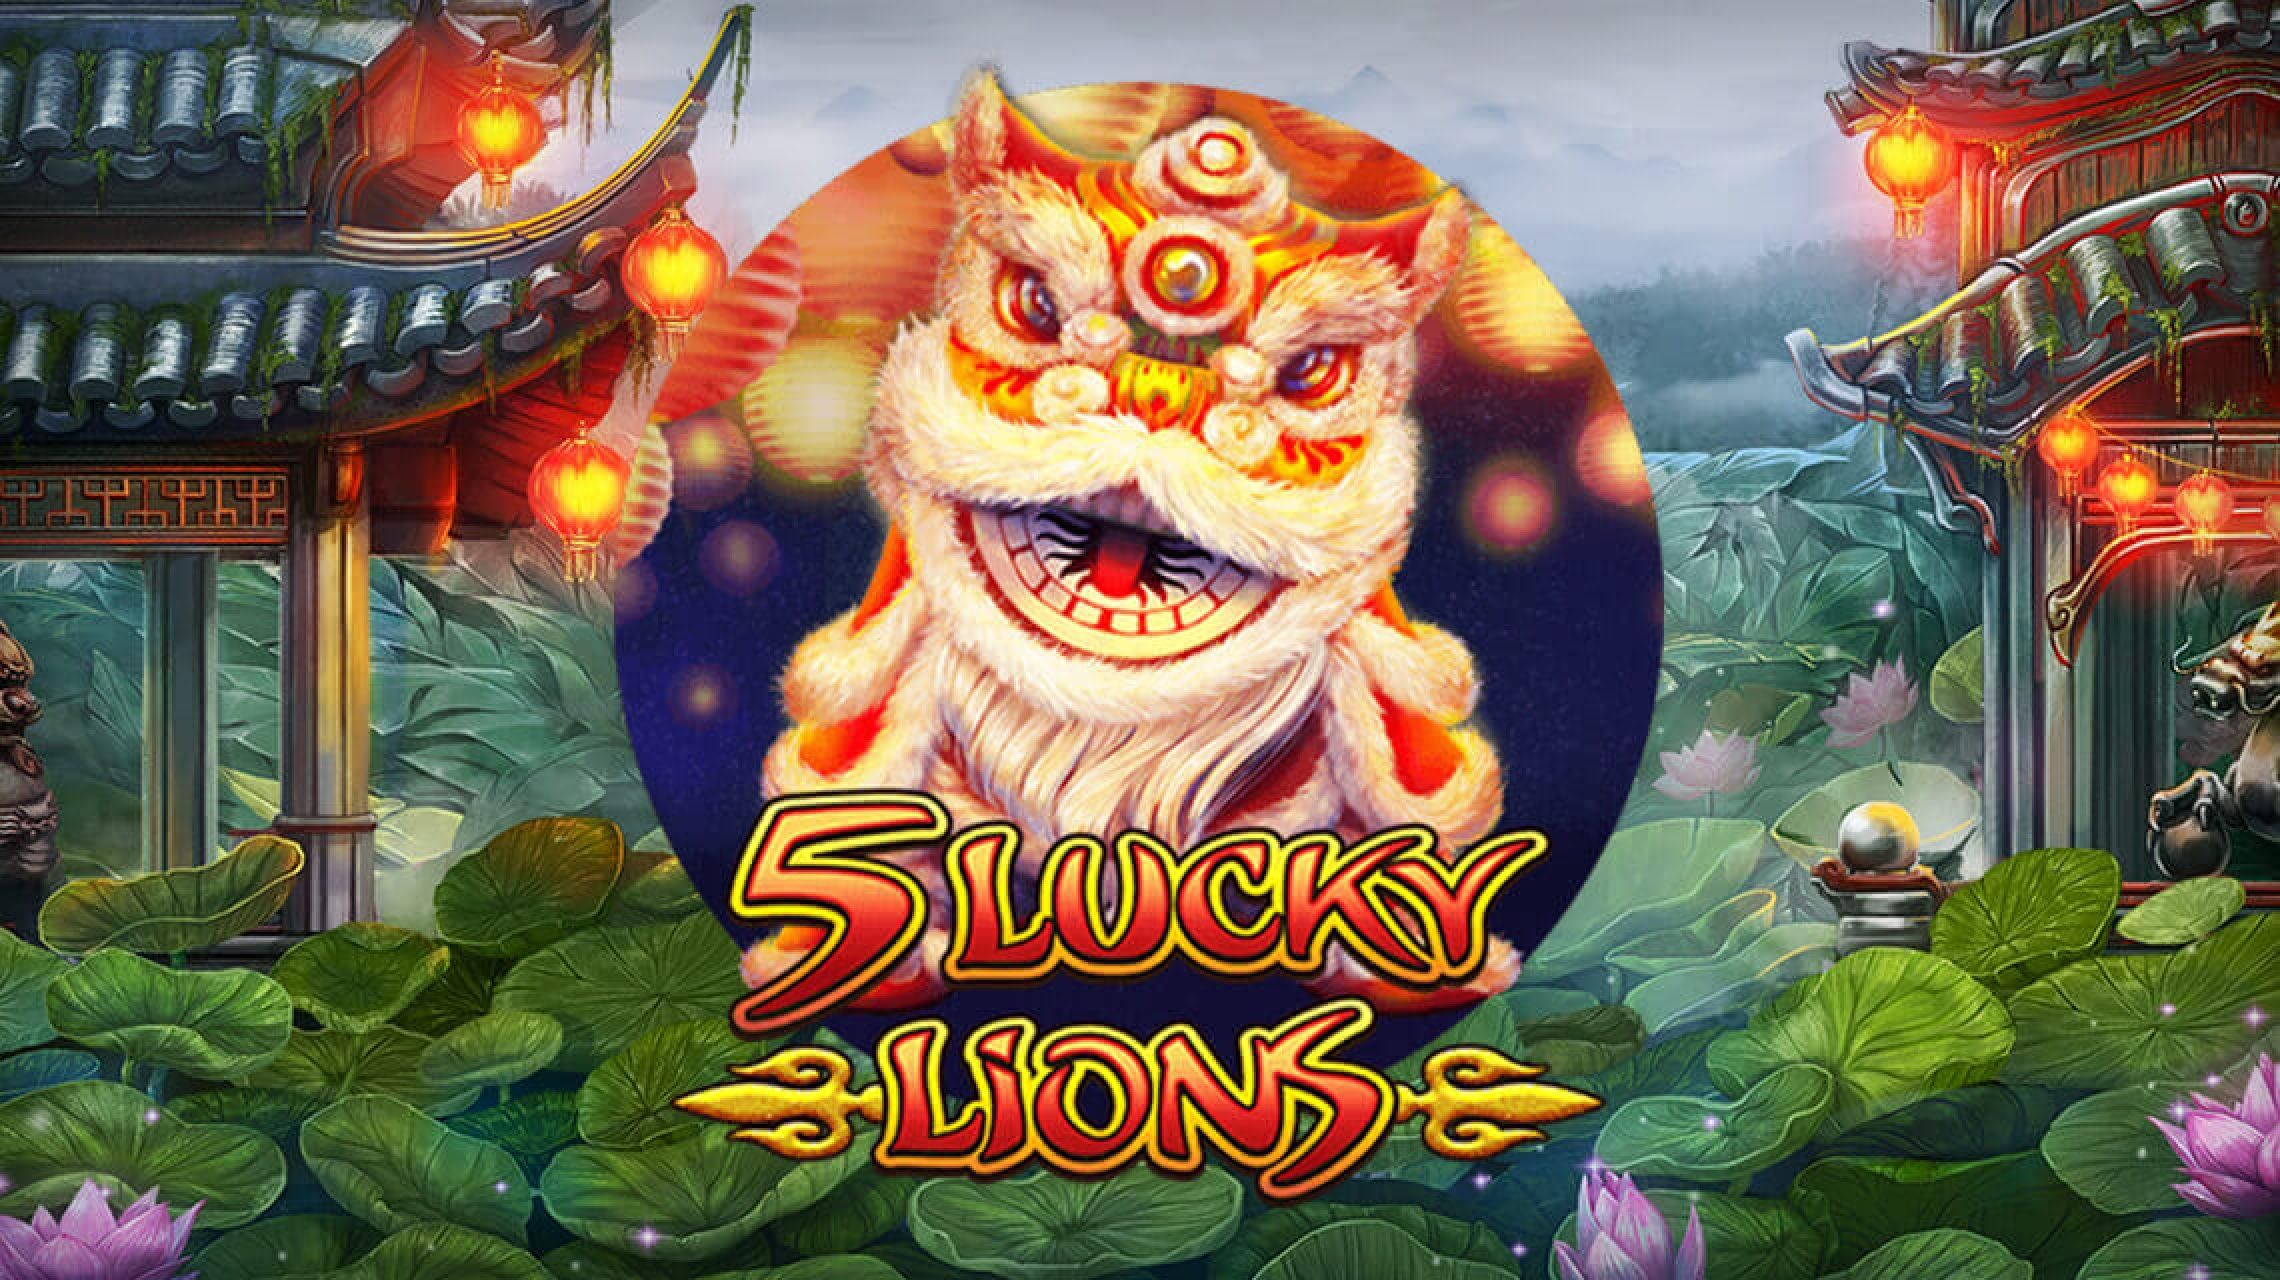 5 Lucky Lions Online Slot Demo Game by Habanero